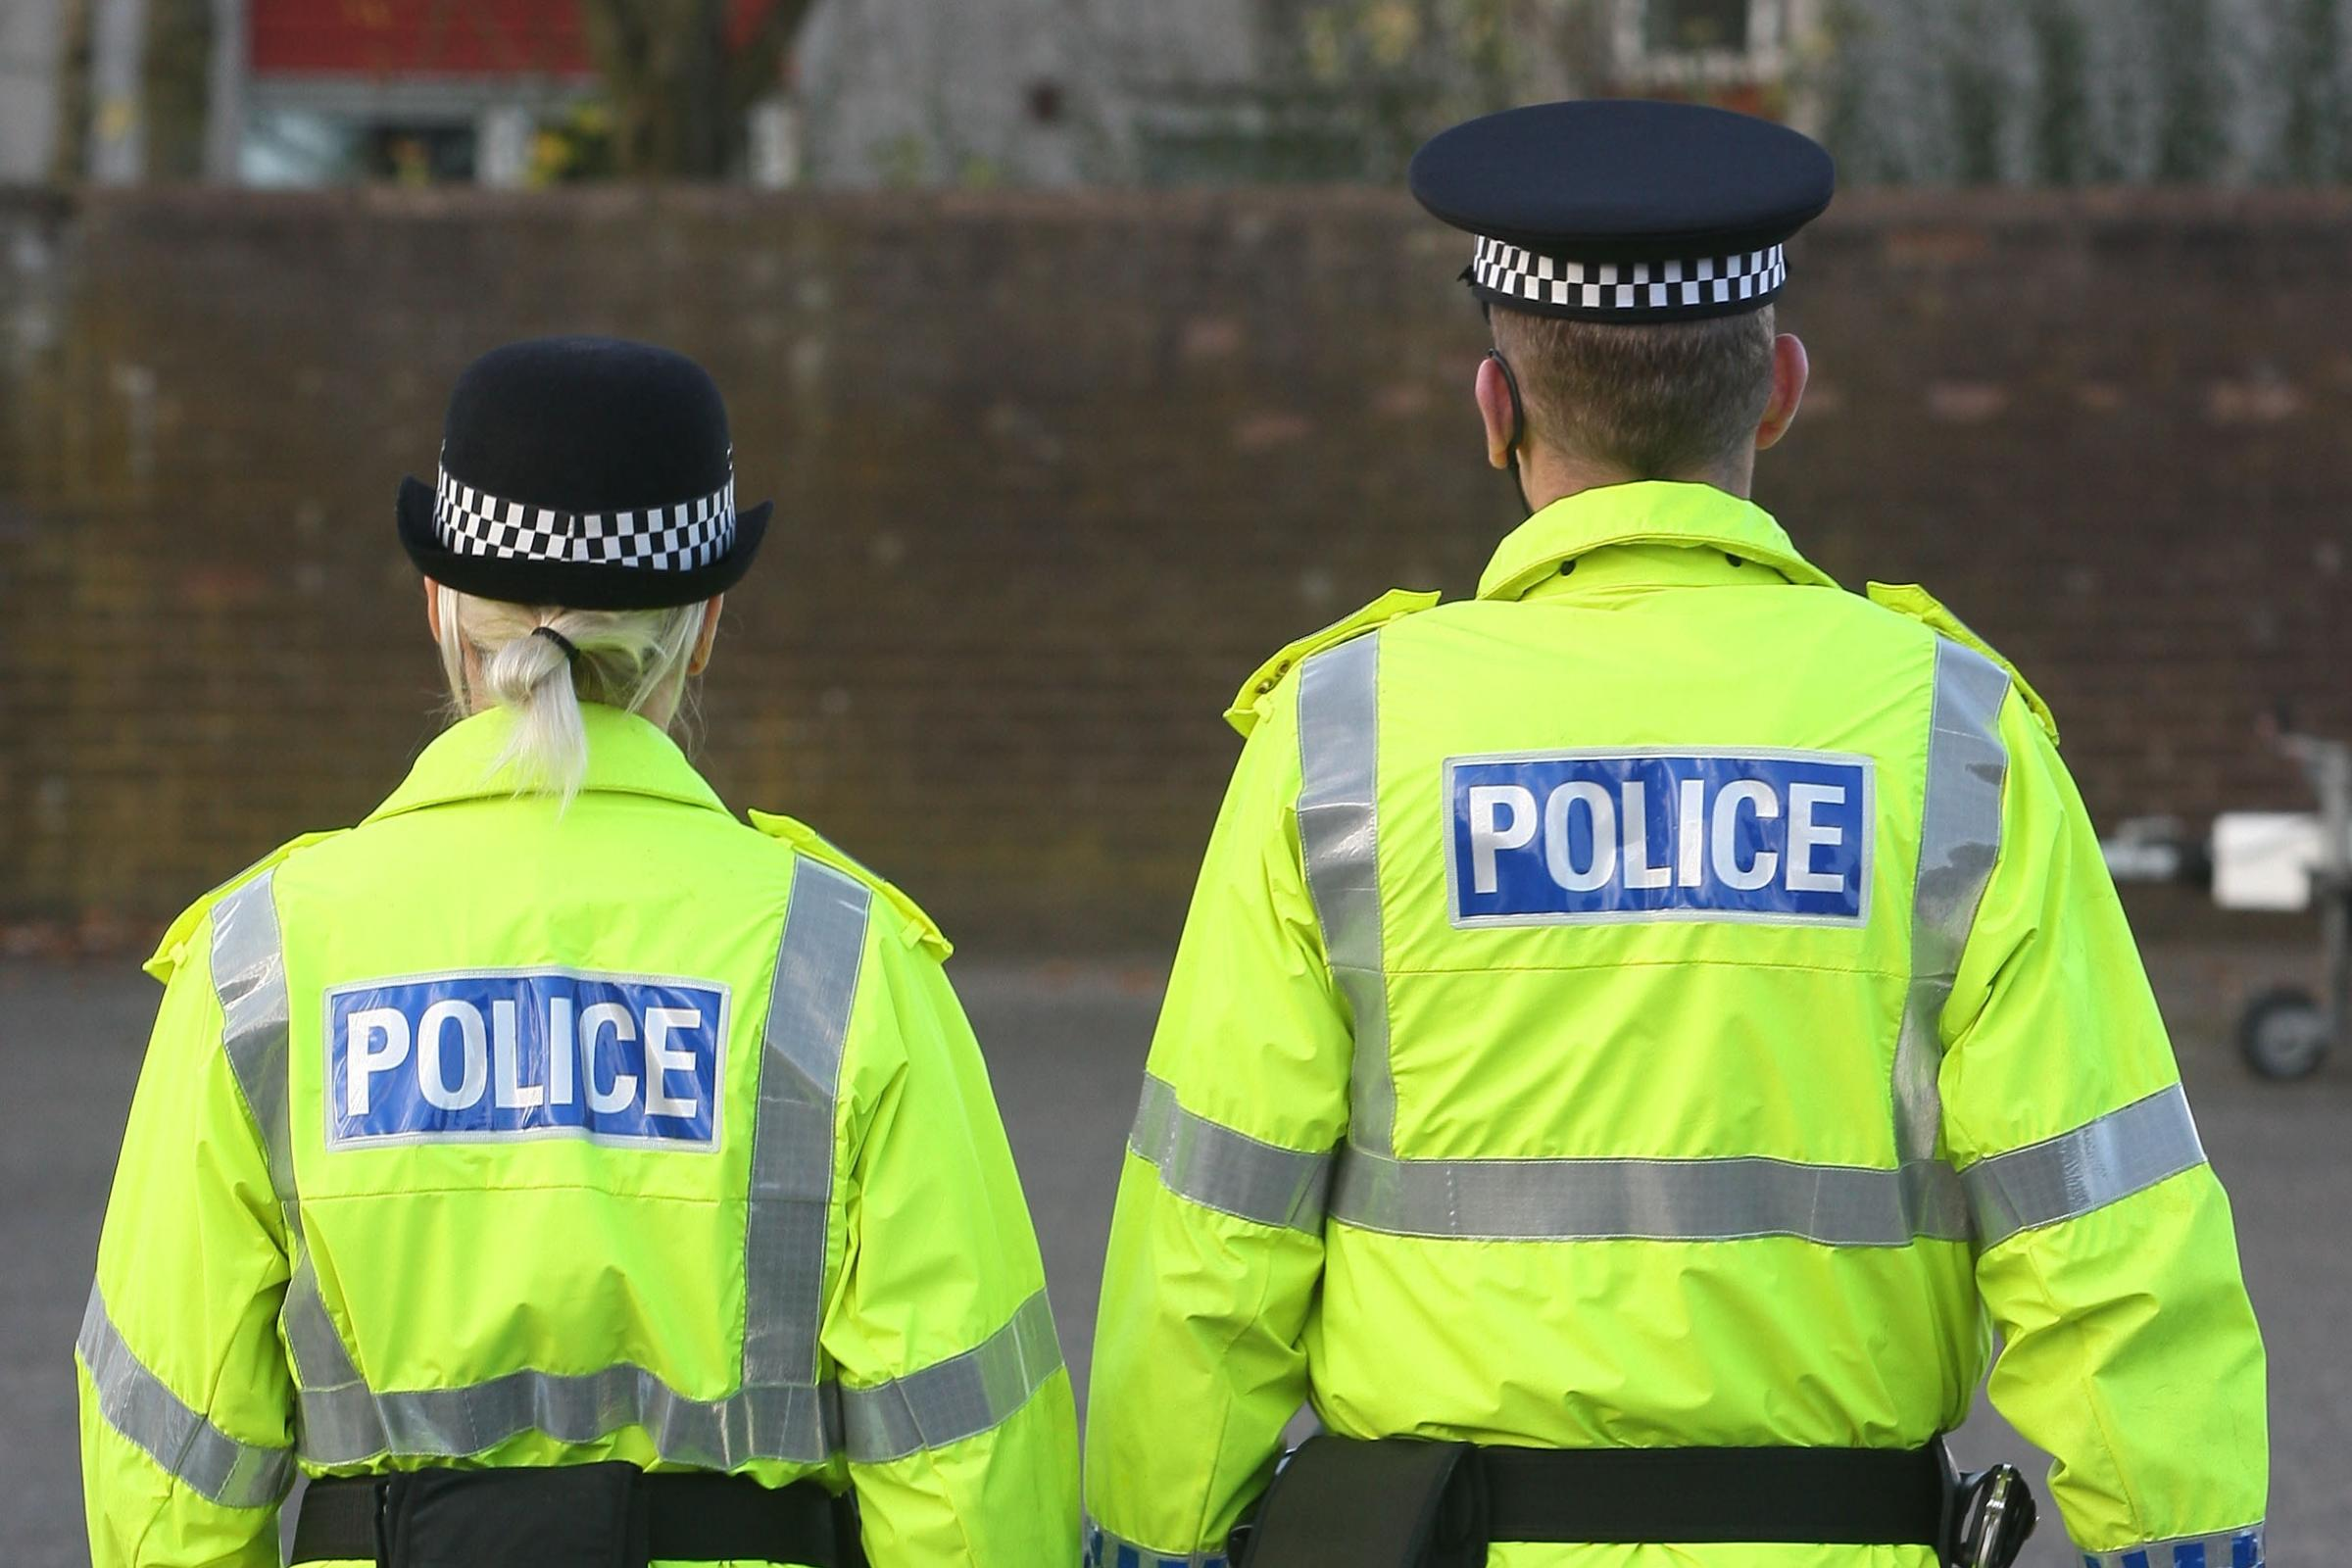 Police get over 800 abandoned 999 calls